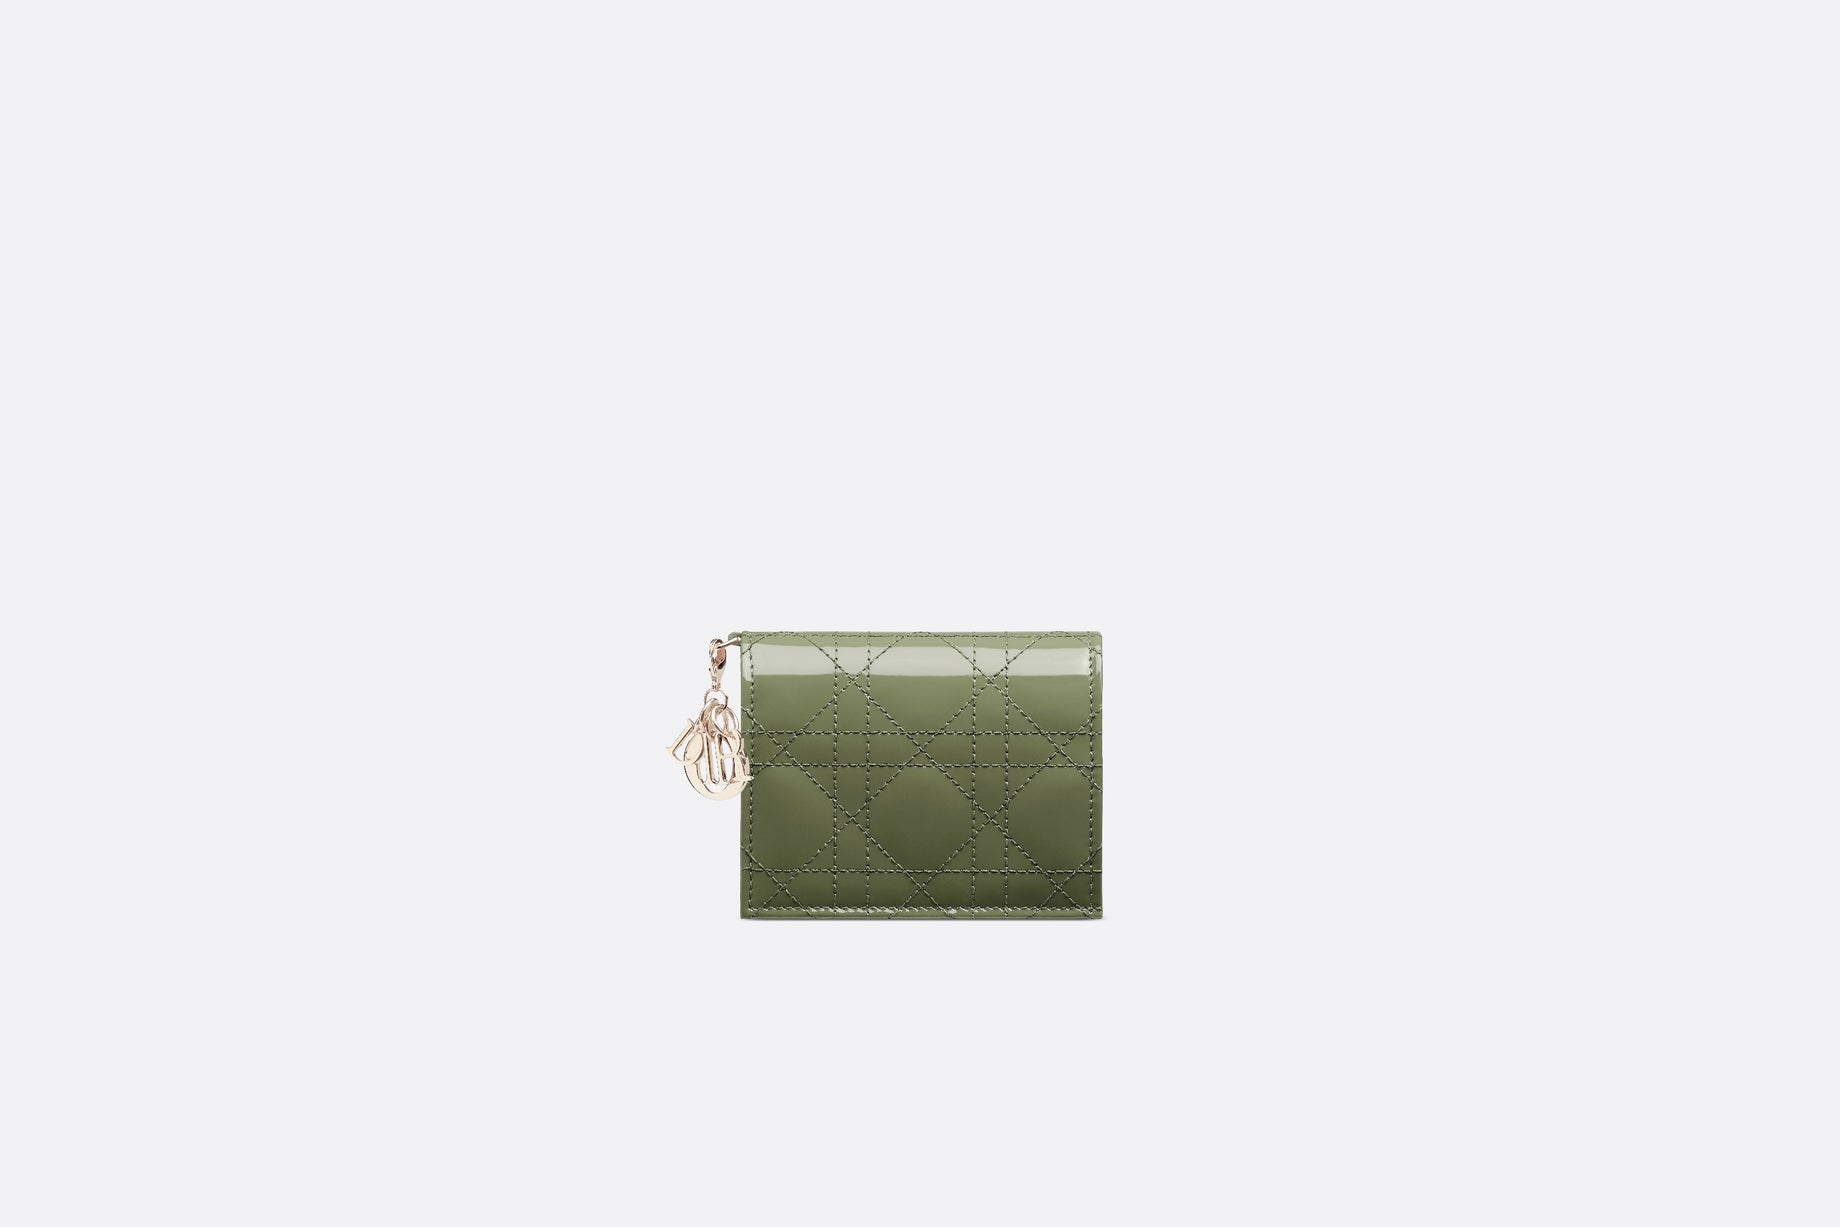 Mini Lady Dior Wallet • Dusty Jade Patent Cannage Calfskin